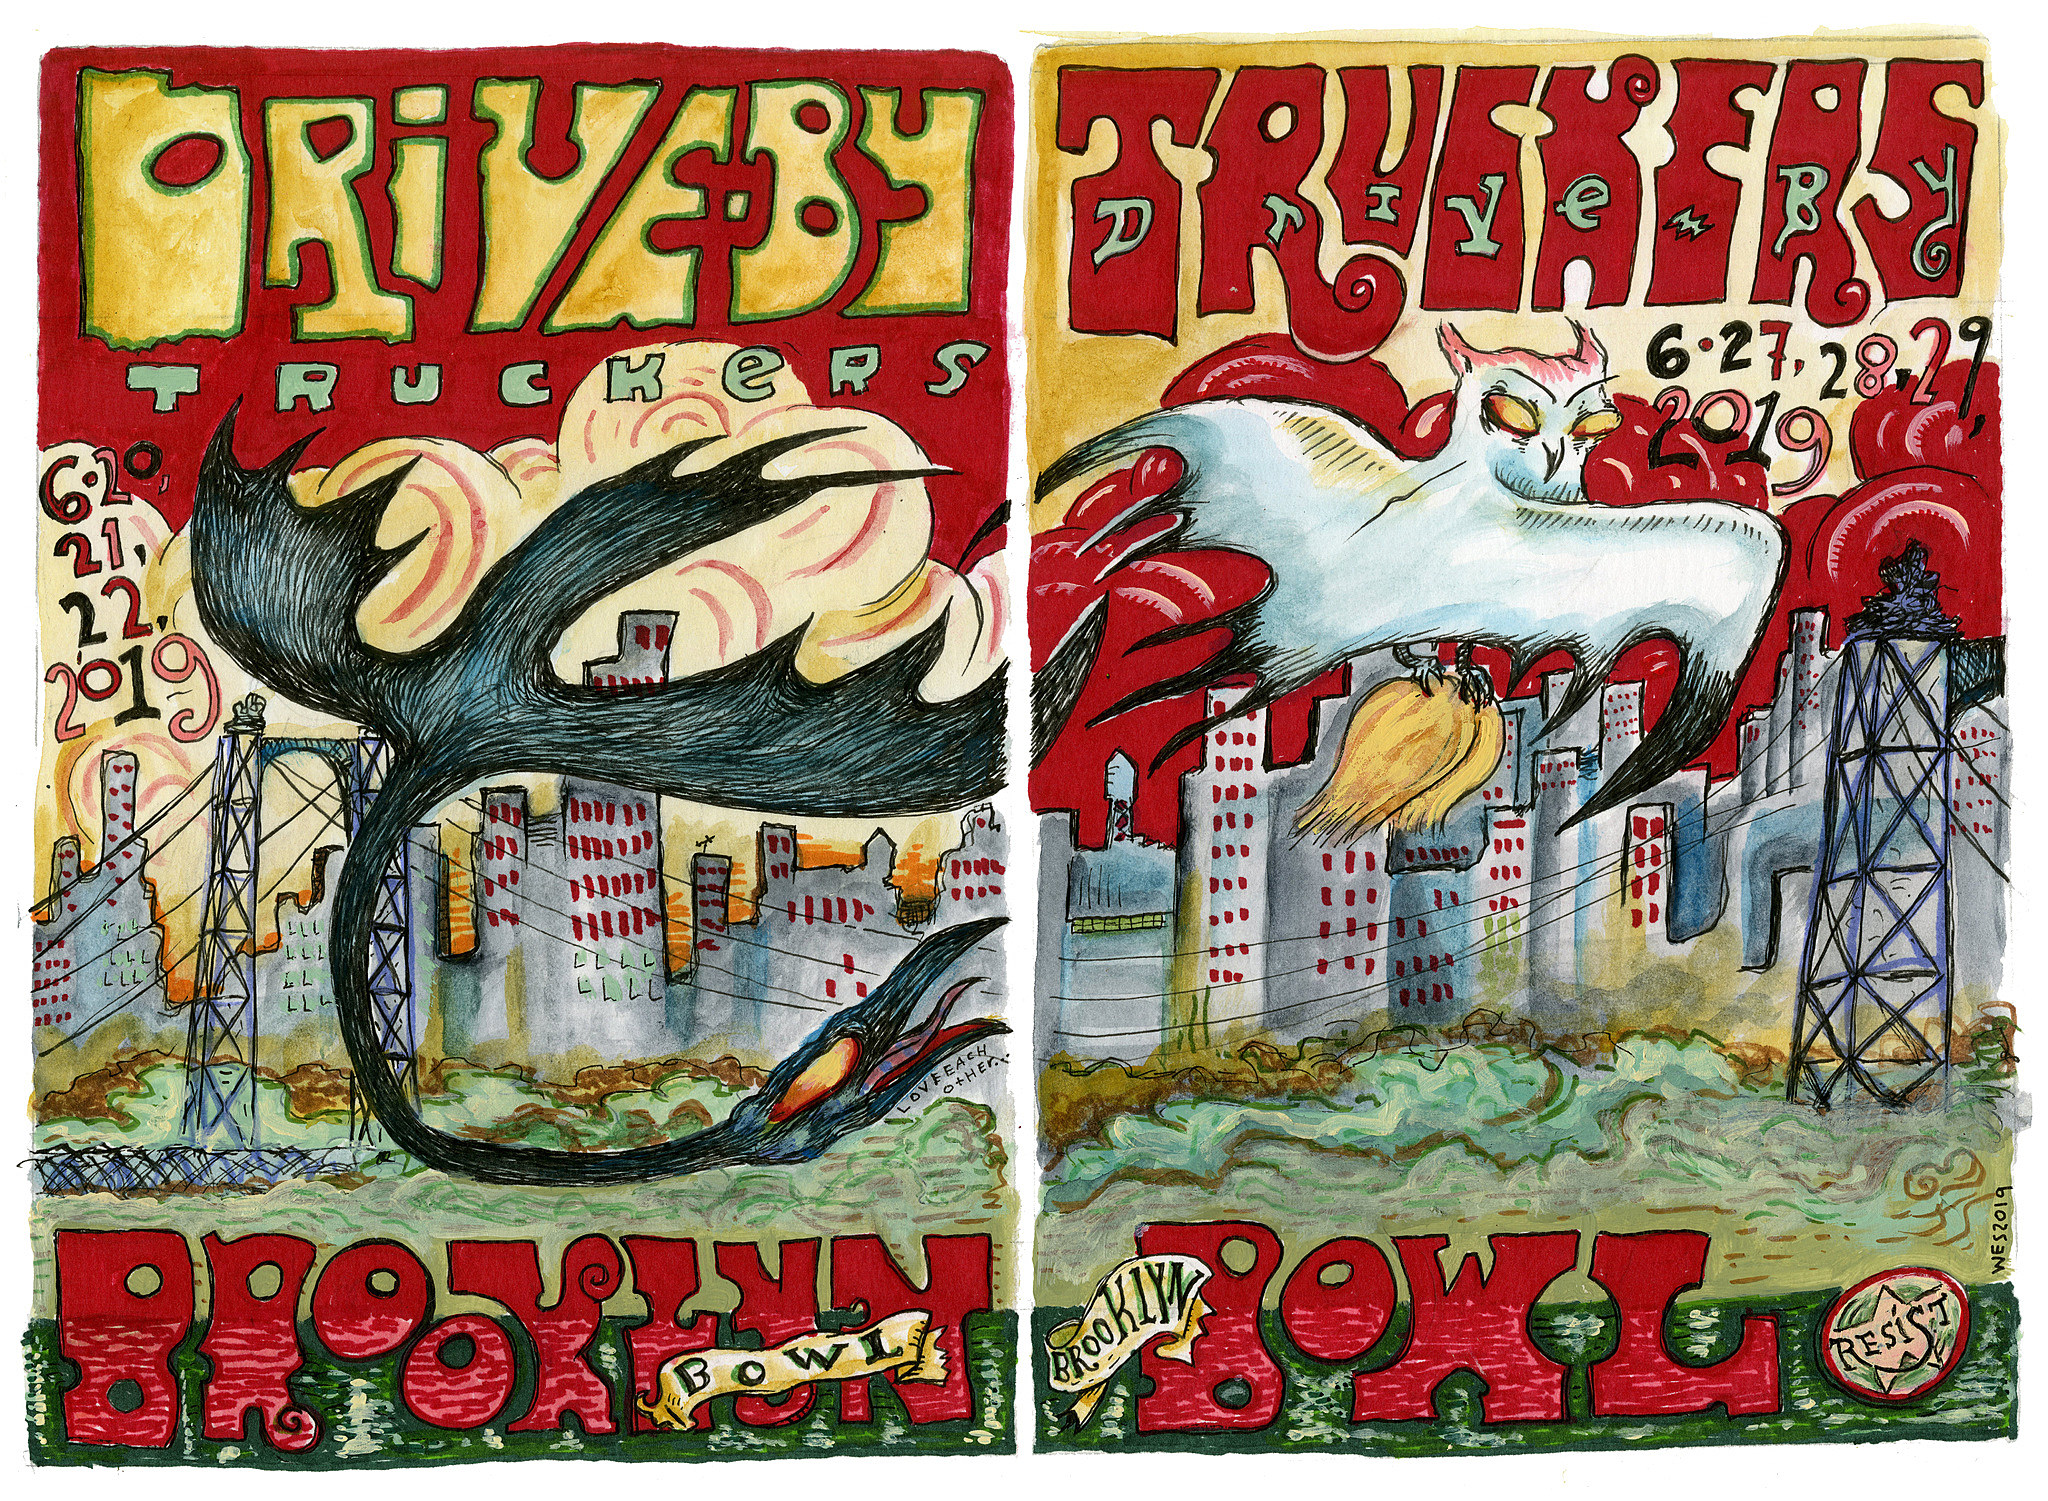 Drive By Truckers Brooklyn Bowl poster